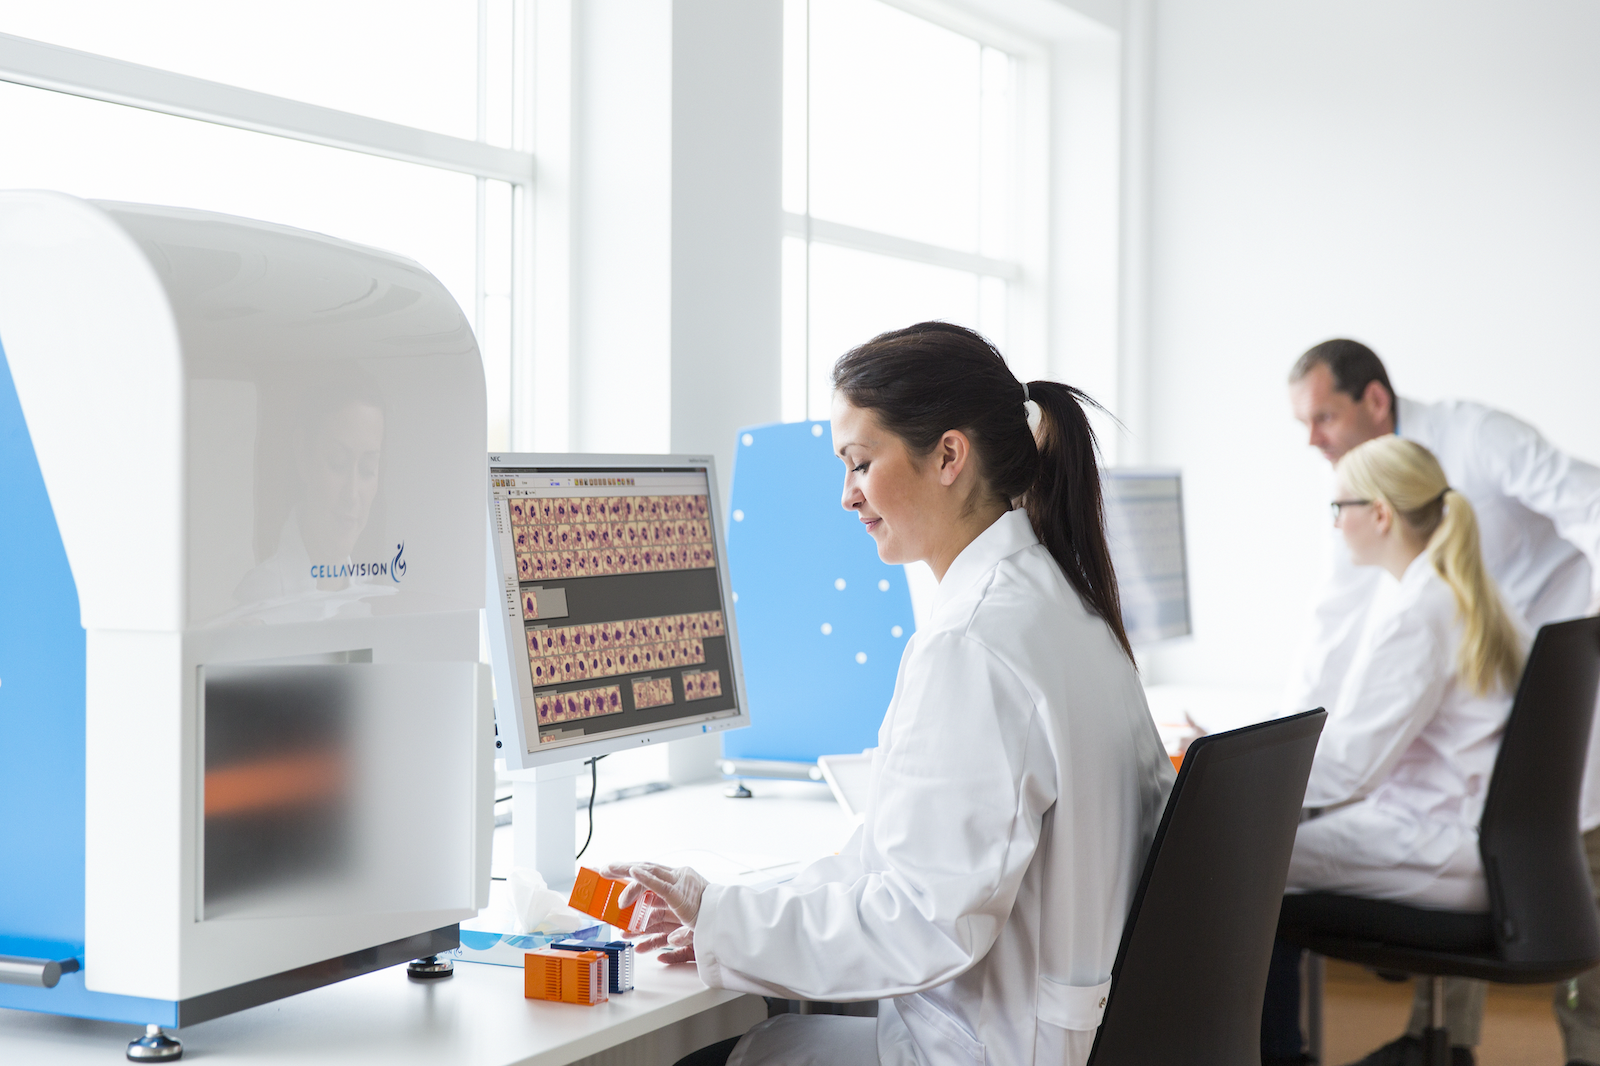 Female chemist sitting in front of a CellaVison blood analysis machine in a medical lab